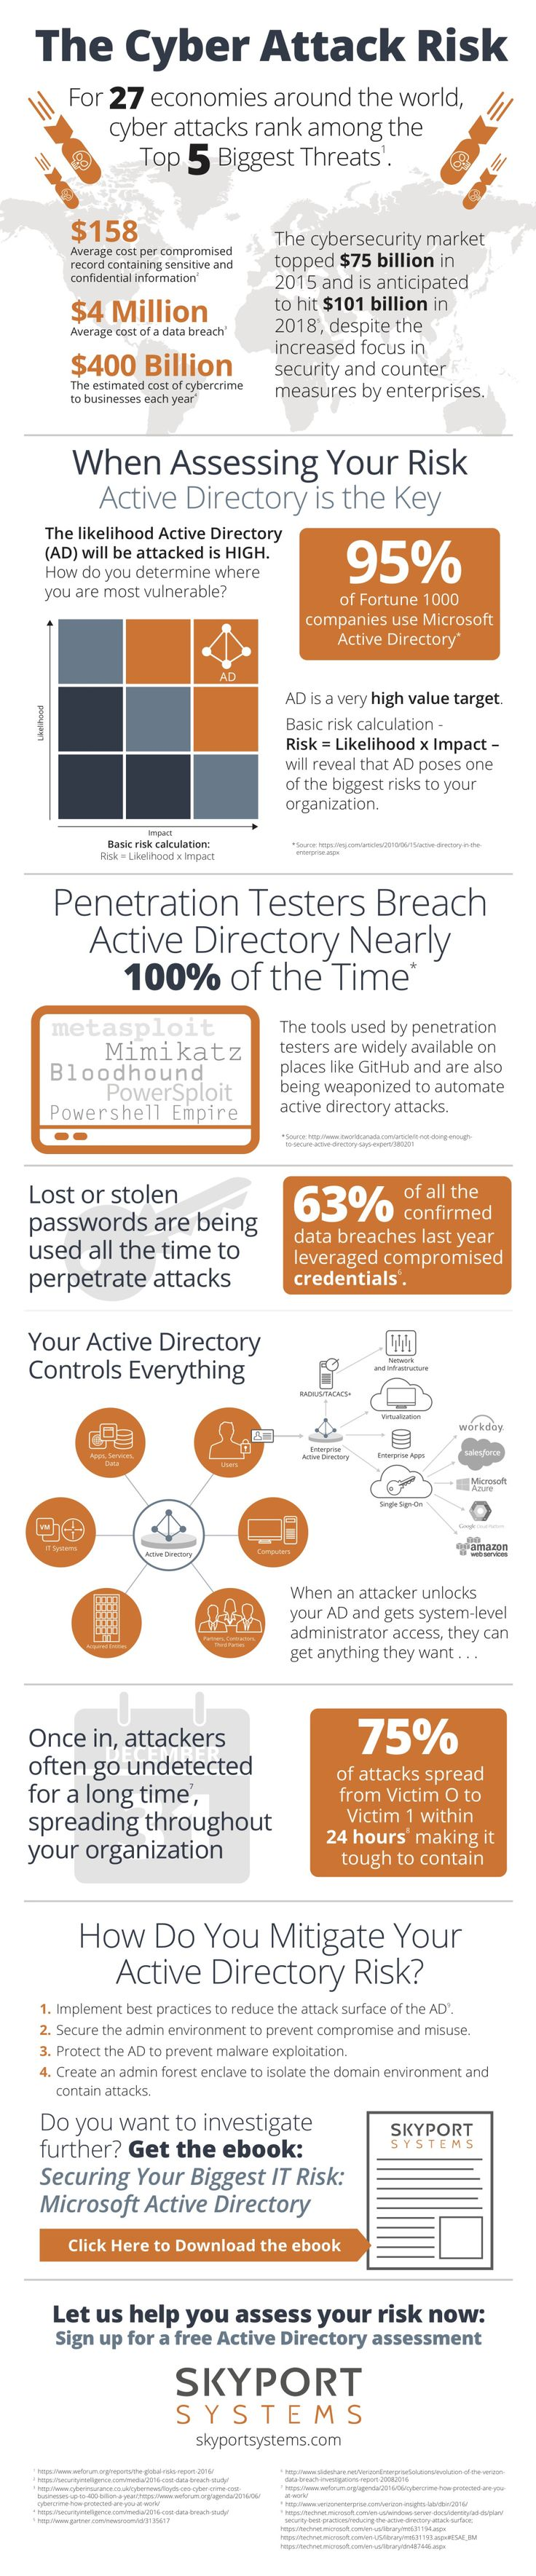 Ninety-five percent of Fortune 1000 companies use Microsoft Active Directory for authentication. Because Active Directory (AD) is not on the radar of most organizations as a target for cyber attacks, it's often overlooked and vulnerable. Check out our infographic for more, and then download our eboo